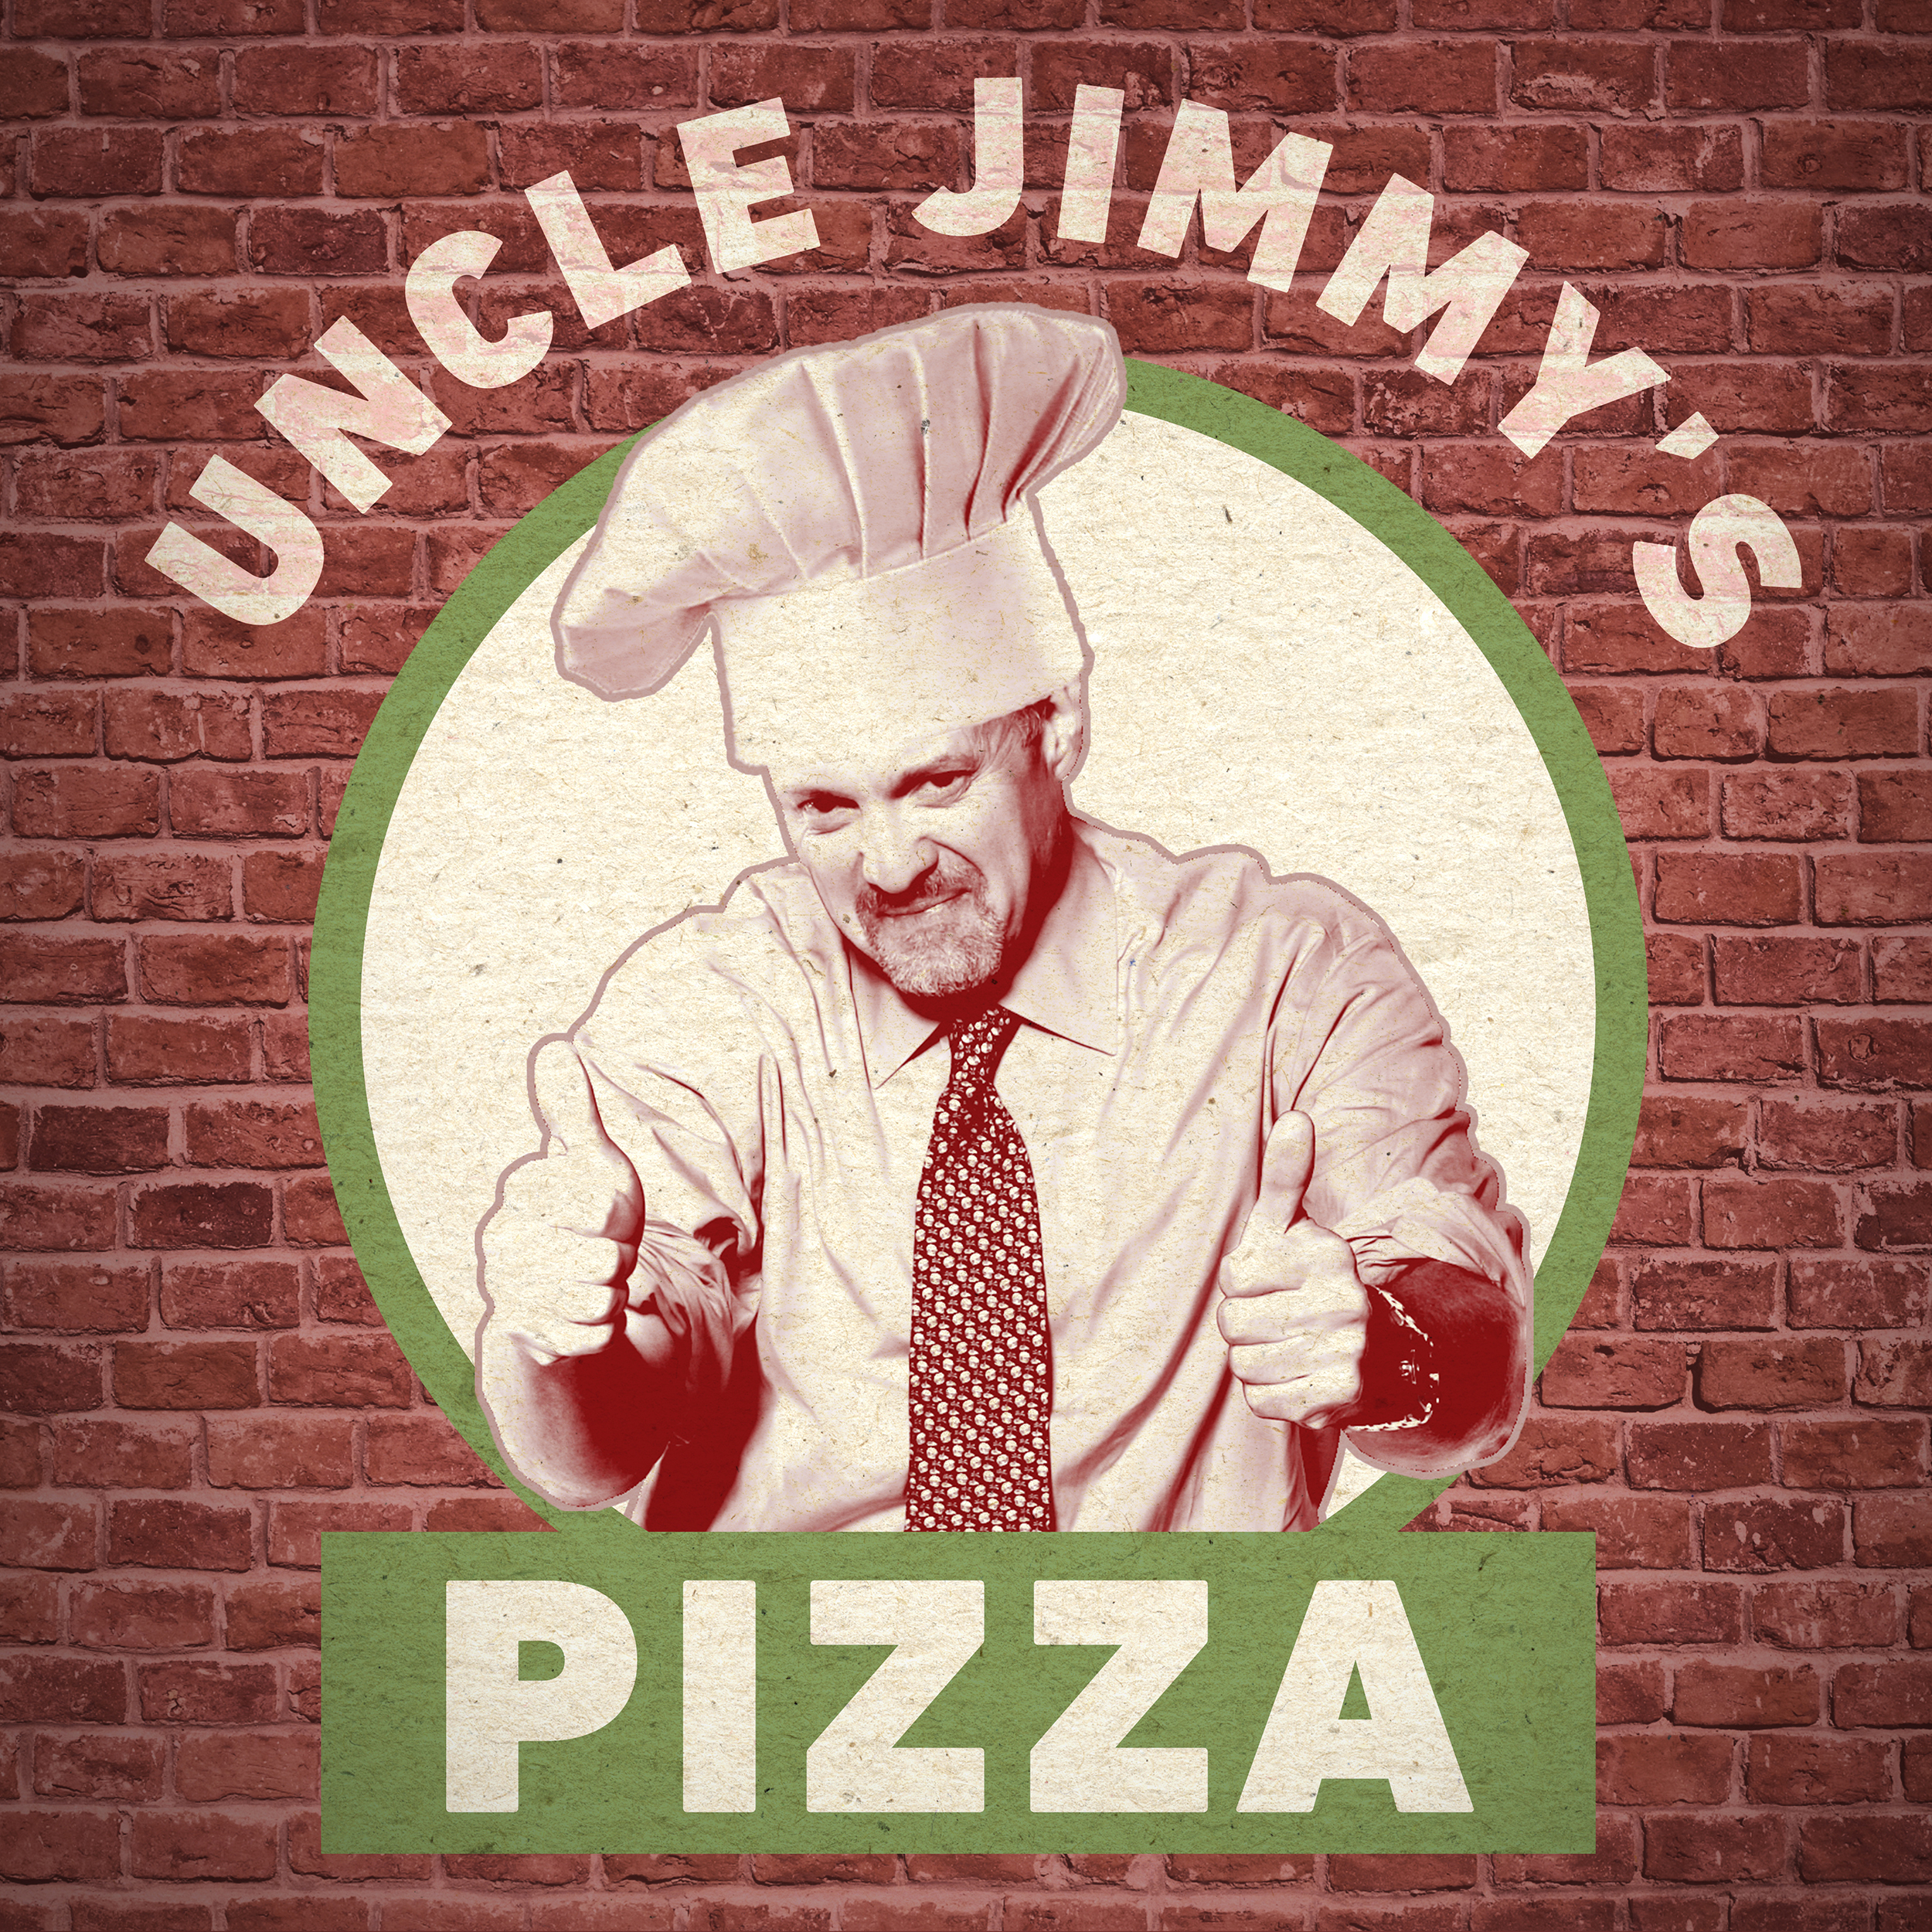 Cramer pizza wars which one brings the dough five major chains dominate the marketpizza hut dominos papa johns little caesars and papa murphys in reality pizza hut is owned by conglomerate yum buycottarizona